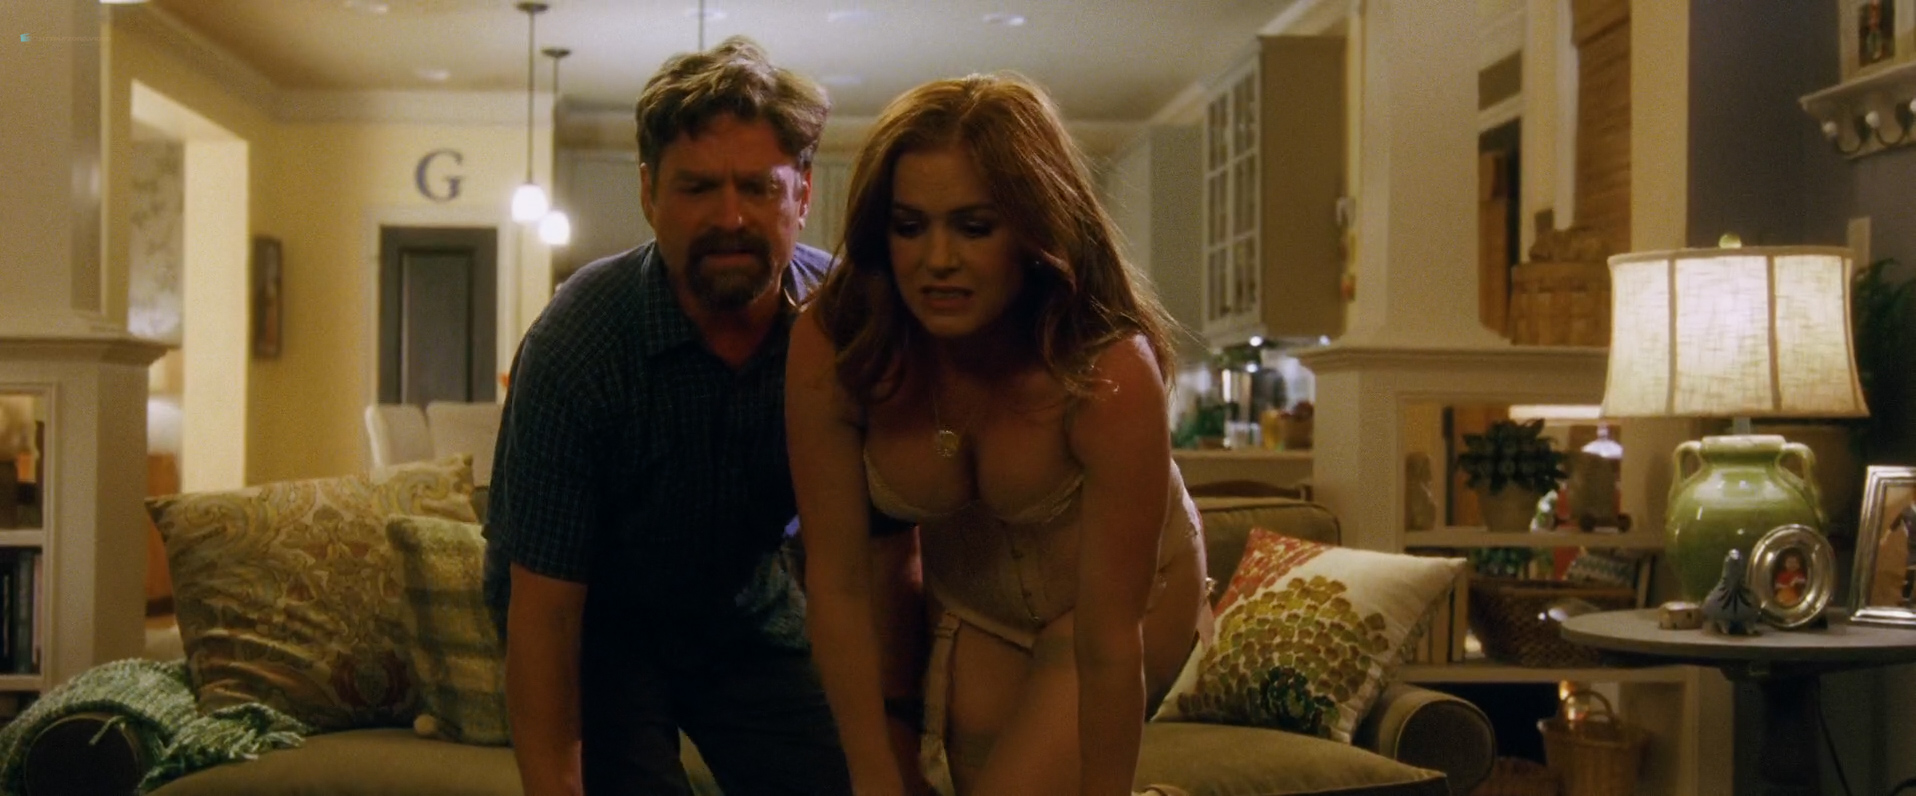 Isla-Fisher-hot-and-sexy-and-Gal-Gadot-hot-in-lingerie-Keeping-Up-with-the-Joneses-2016-HD-1080p-Web-Dl-11.jpg